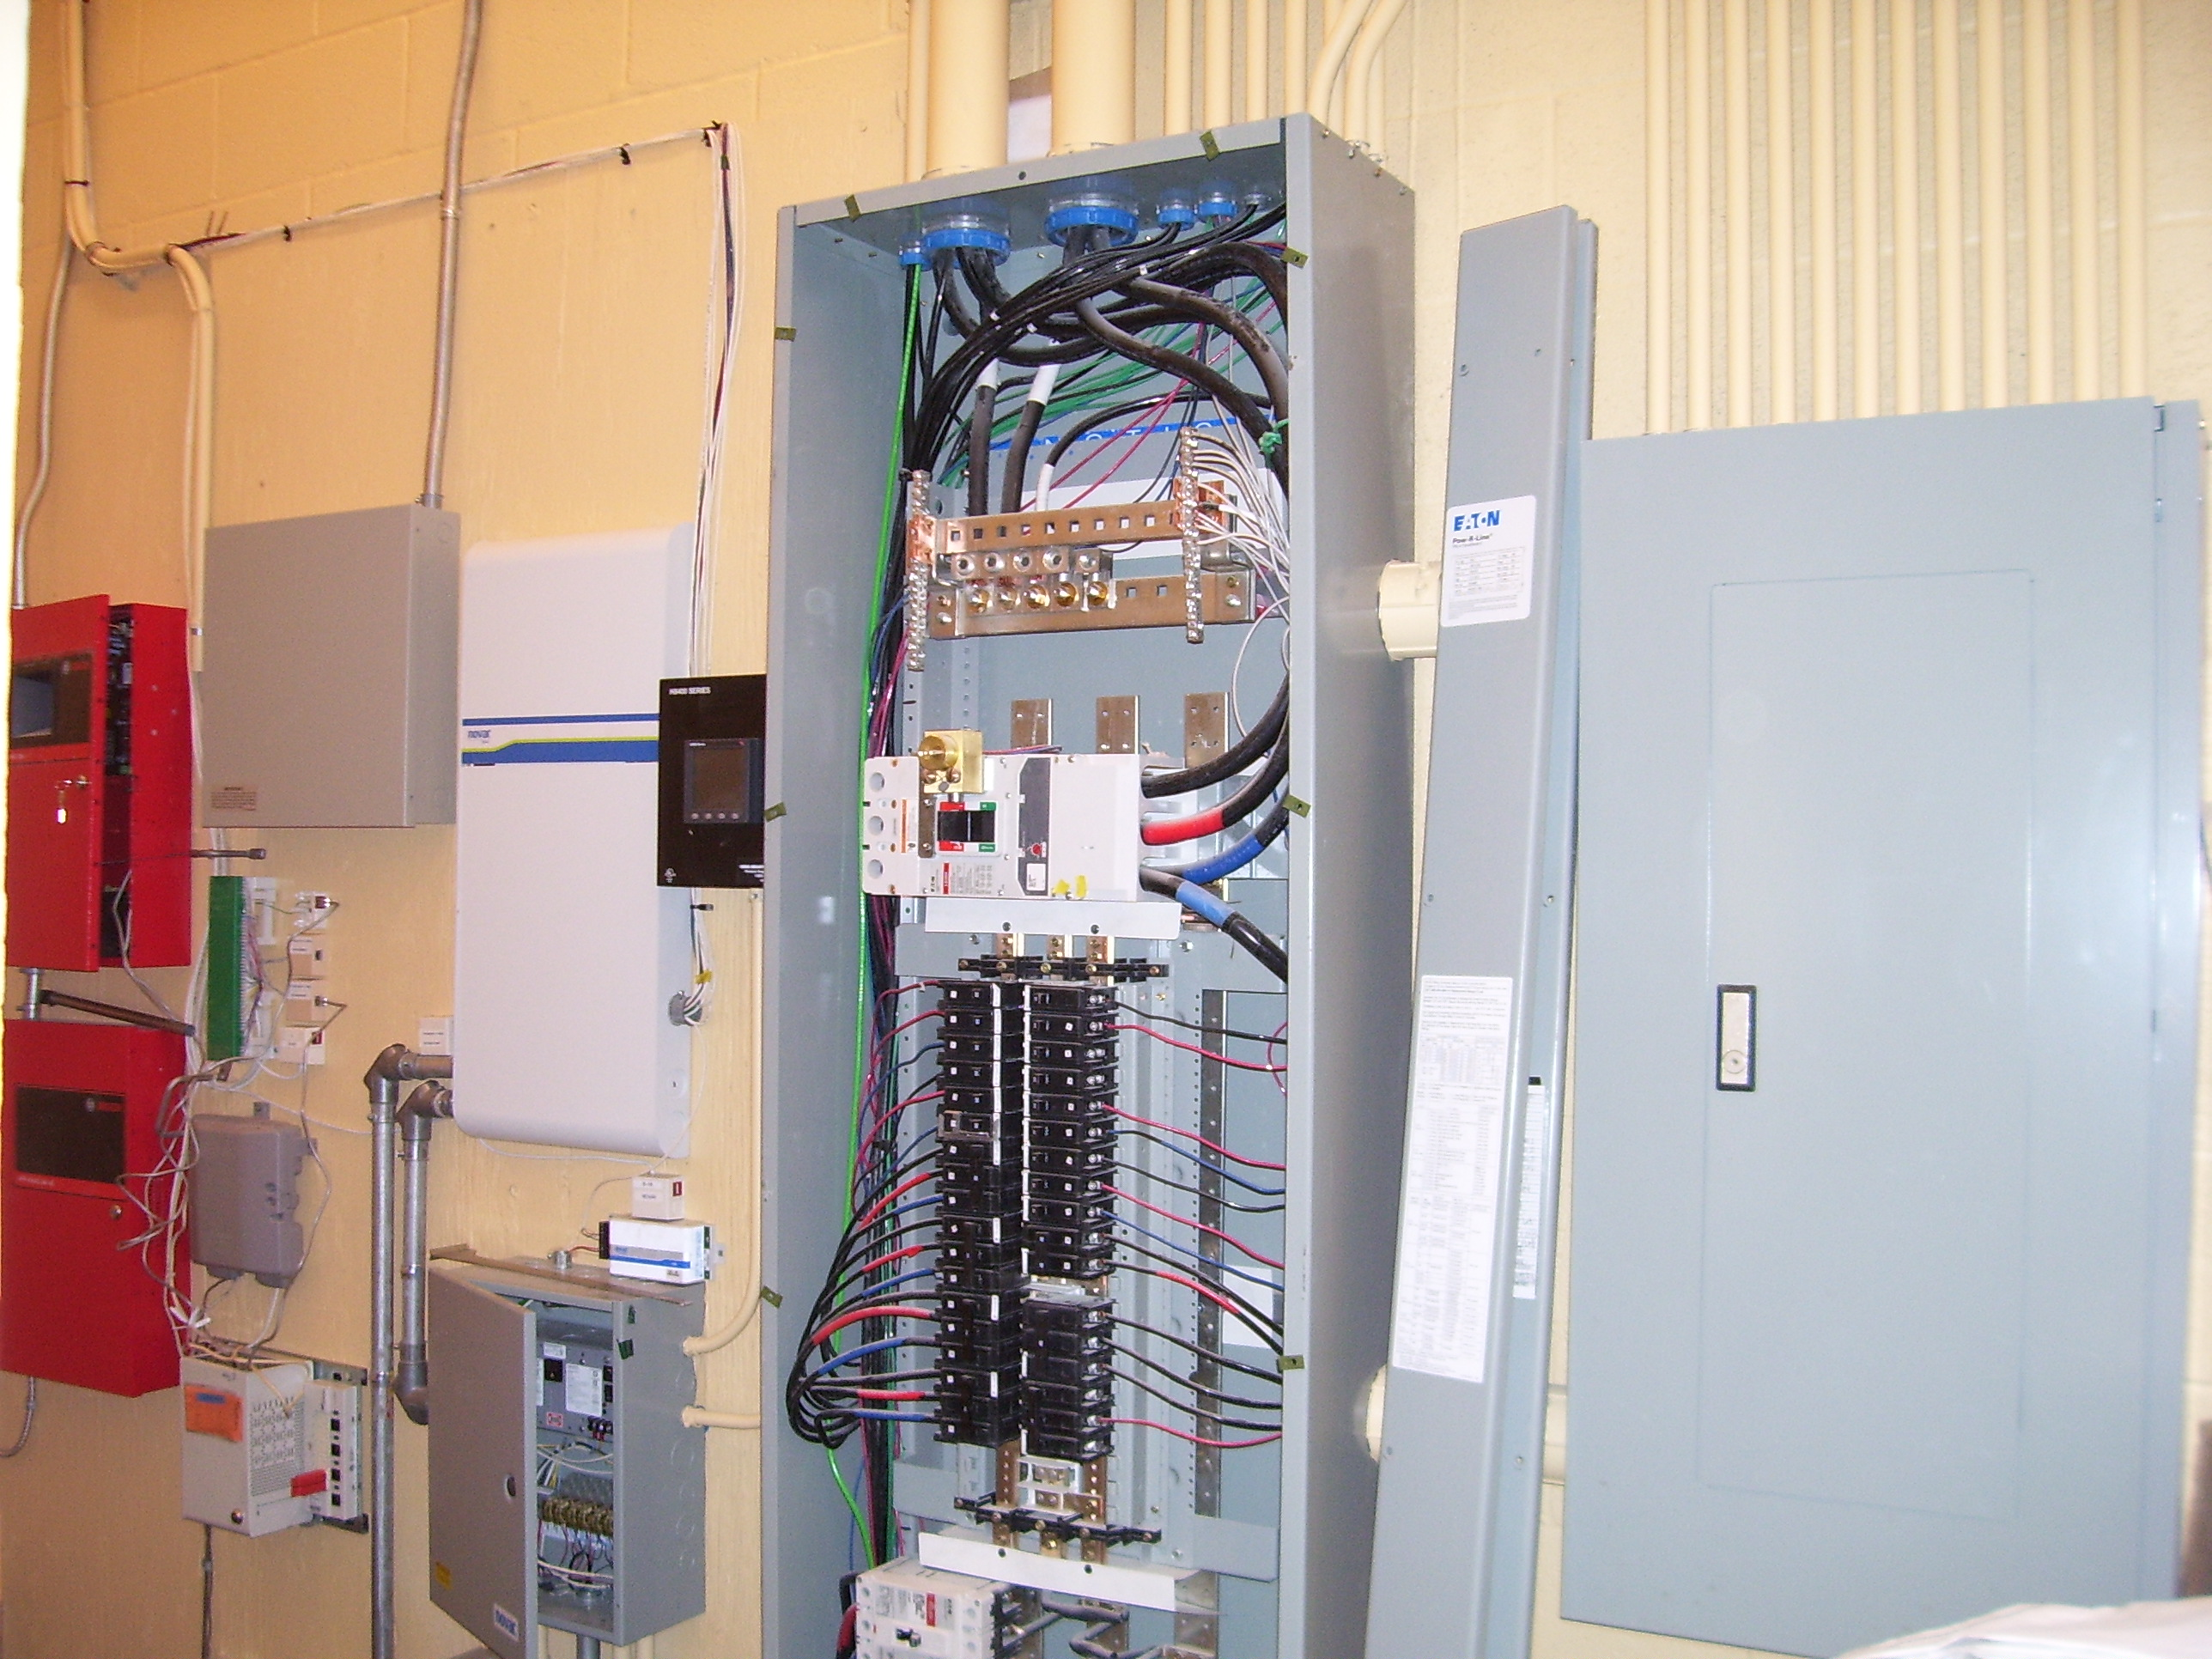 Residential Electric Panel Wiring Diagram Trusted Diagrams Service Home Services Llc Schematics U2022 Power